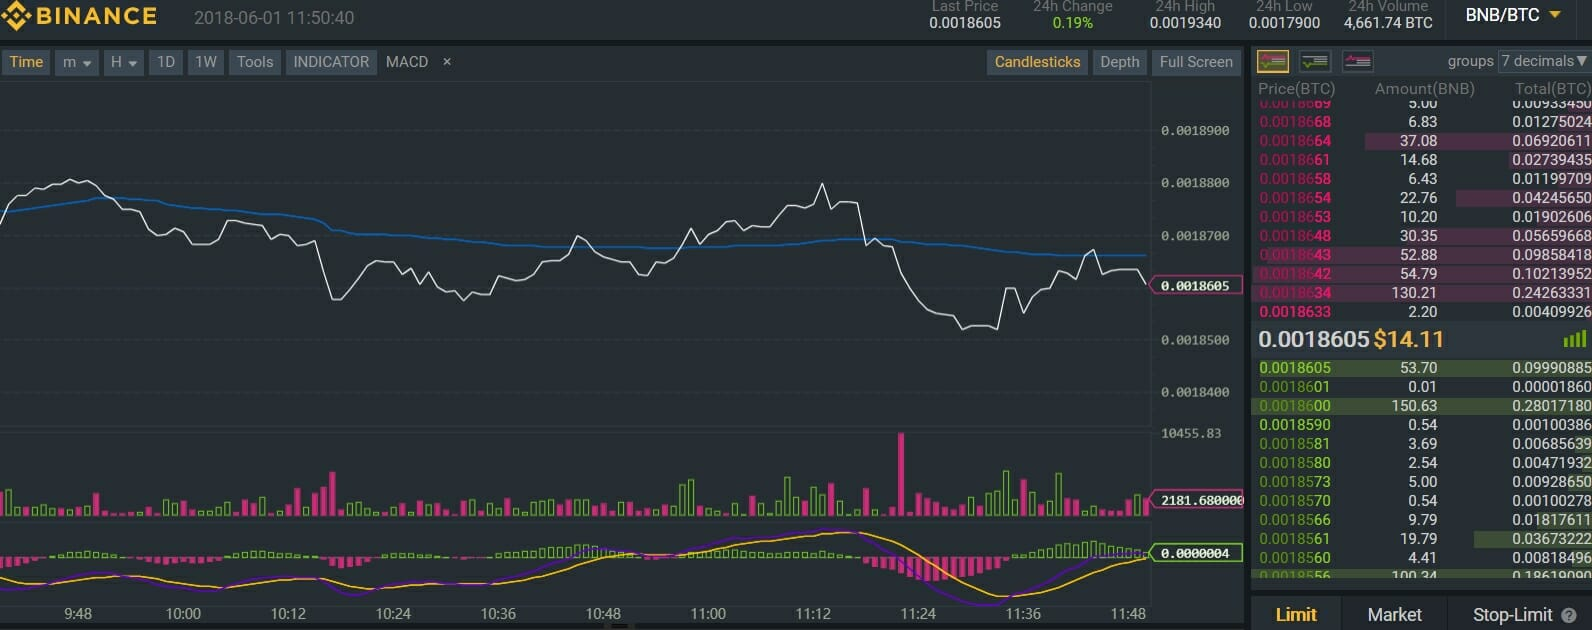 Binance Exchange Review and Tutorial to Buy Bitcoin